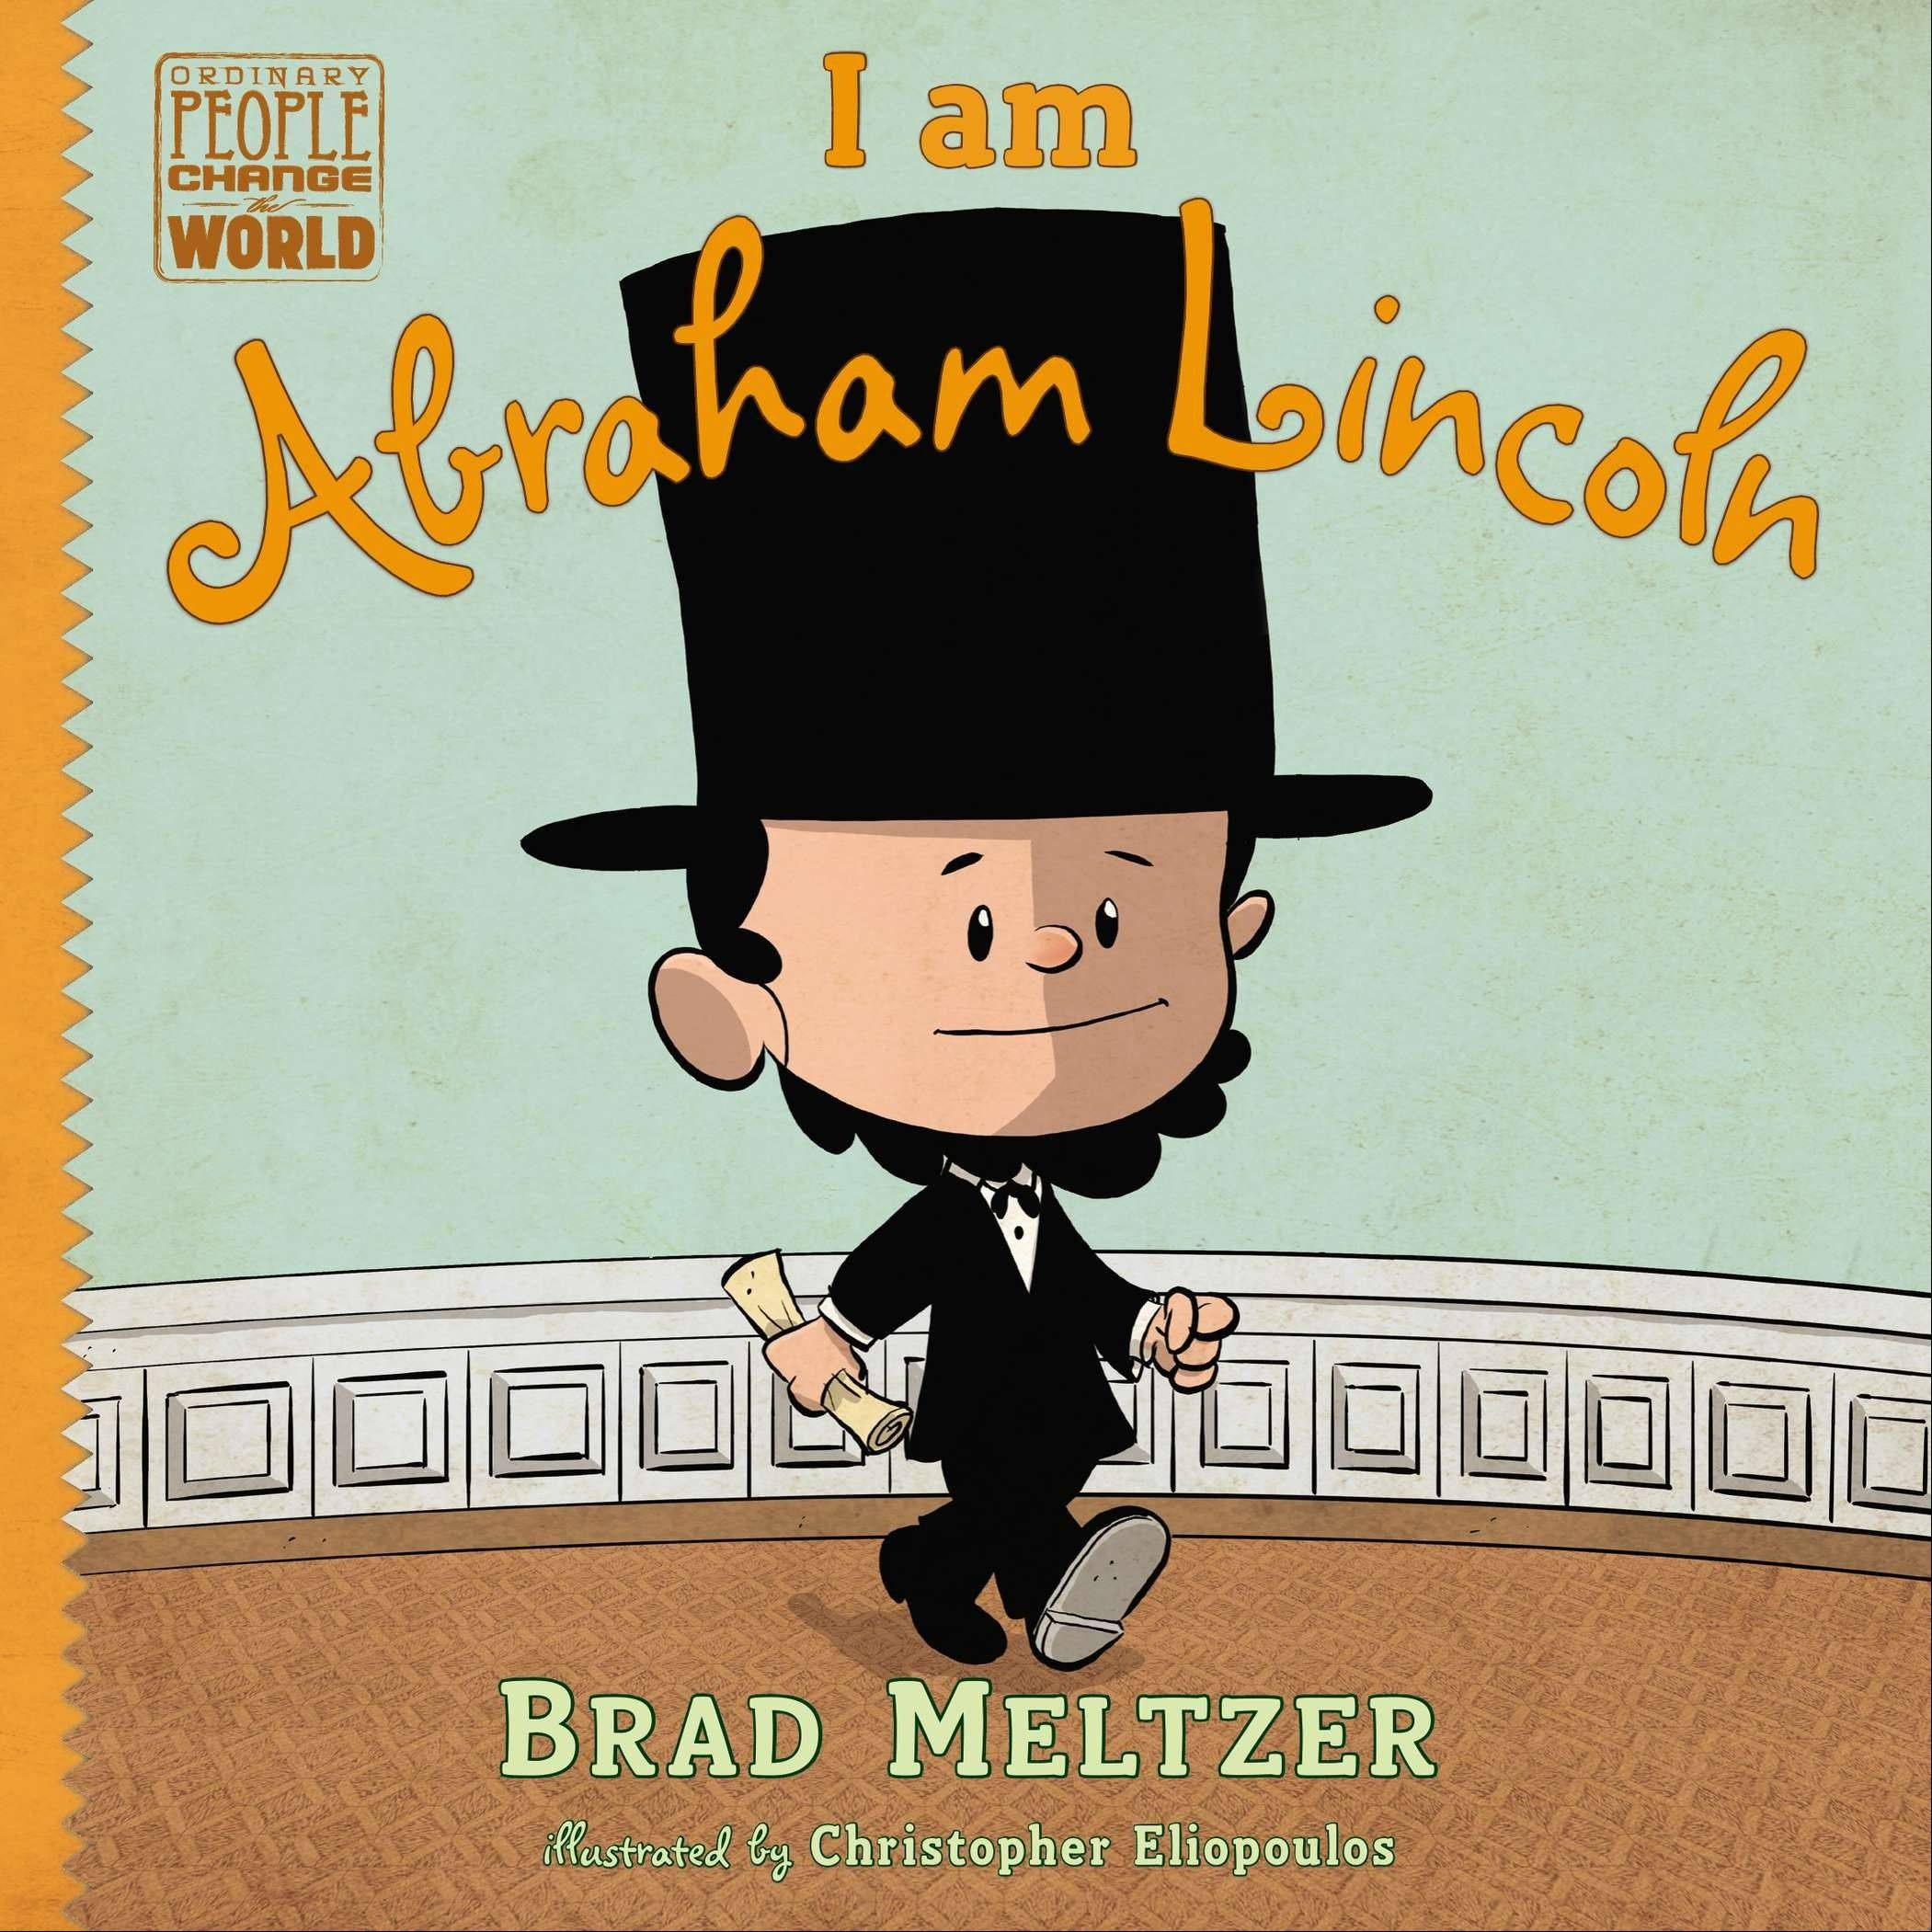 �I am Abraham Lincoln� by Brad Meltzer